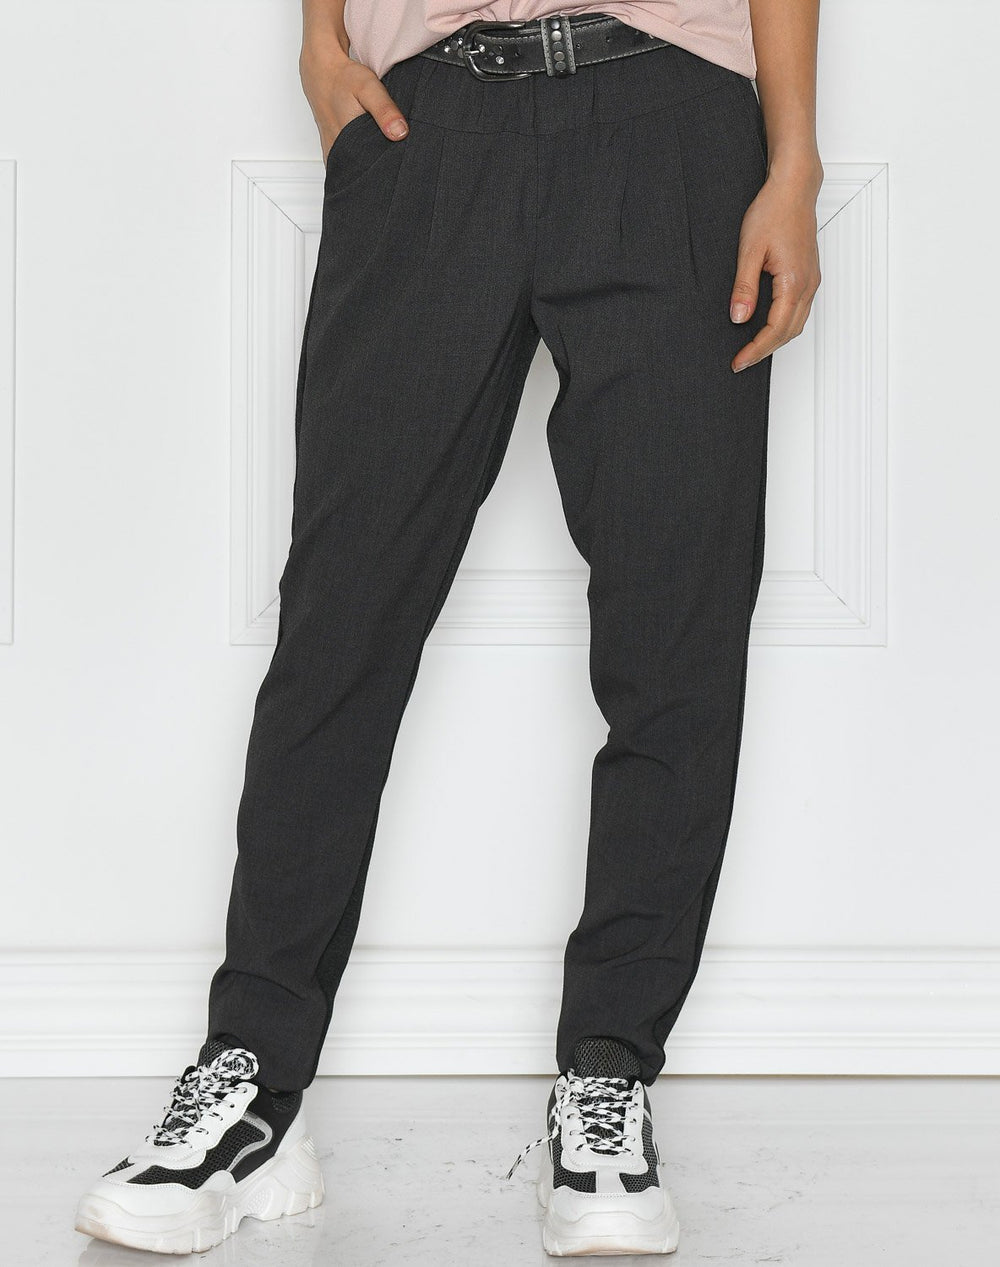 Culture Sarah pant dark grey melange - Online-Mode